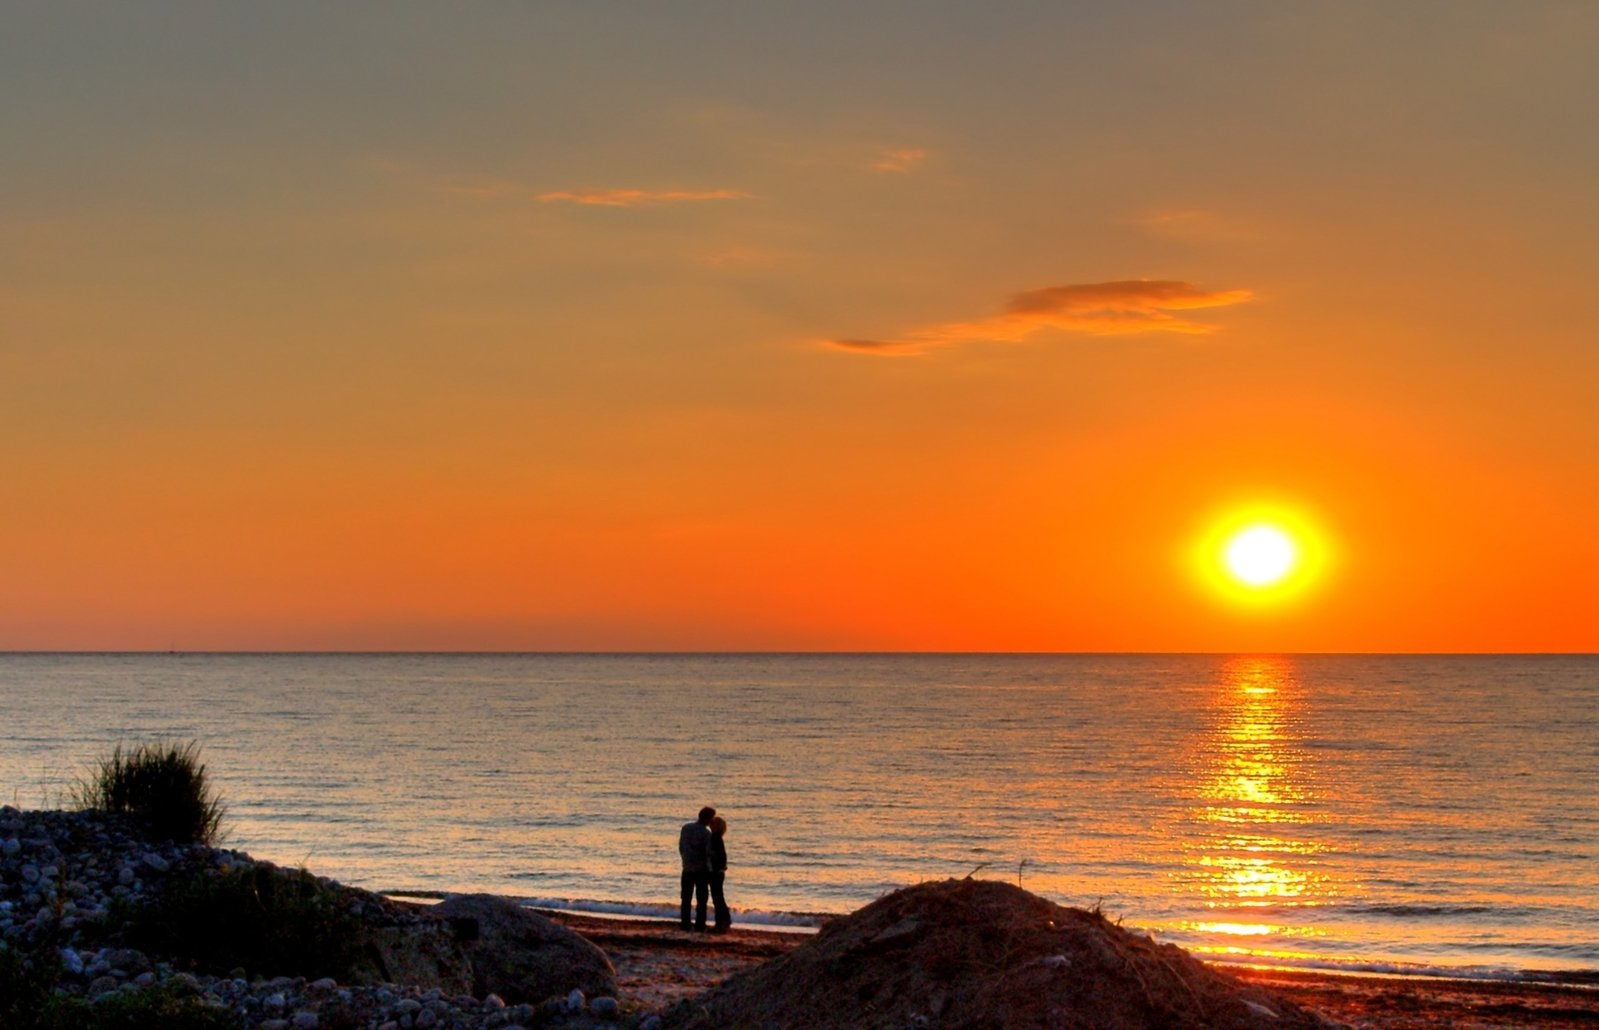 https://images.freeimages.com/images/large-previews/a46/couple-in-sunset-hdr-1307344.jpg